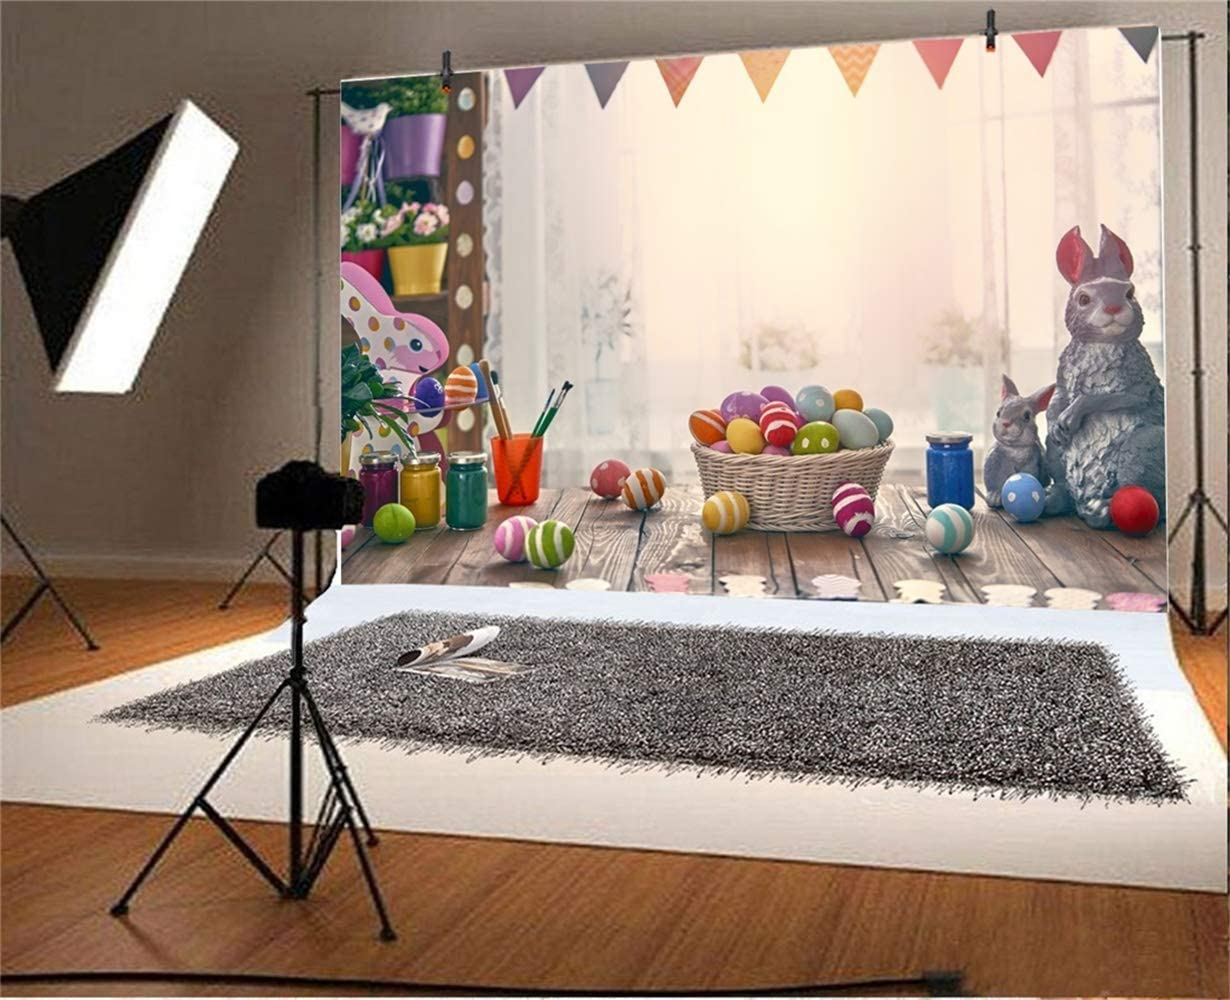 GoEoo 10x7ft Vinyl Easter Photography Background Flower Shop Wooden Table Painted Easter Eggs Pigments Grey Rabbits Backdrops Child Baby Portrairt Shoot Greeting Card Community Easter Egg Hunt